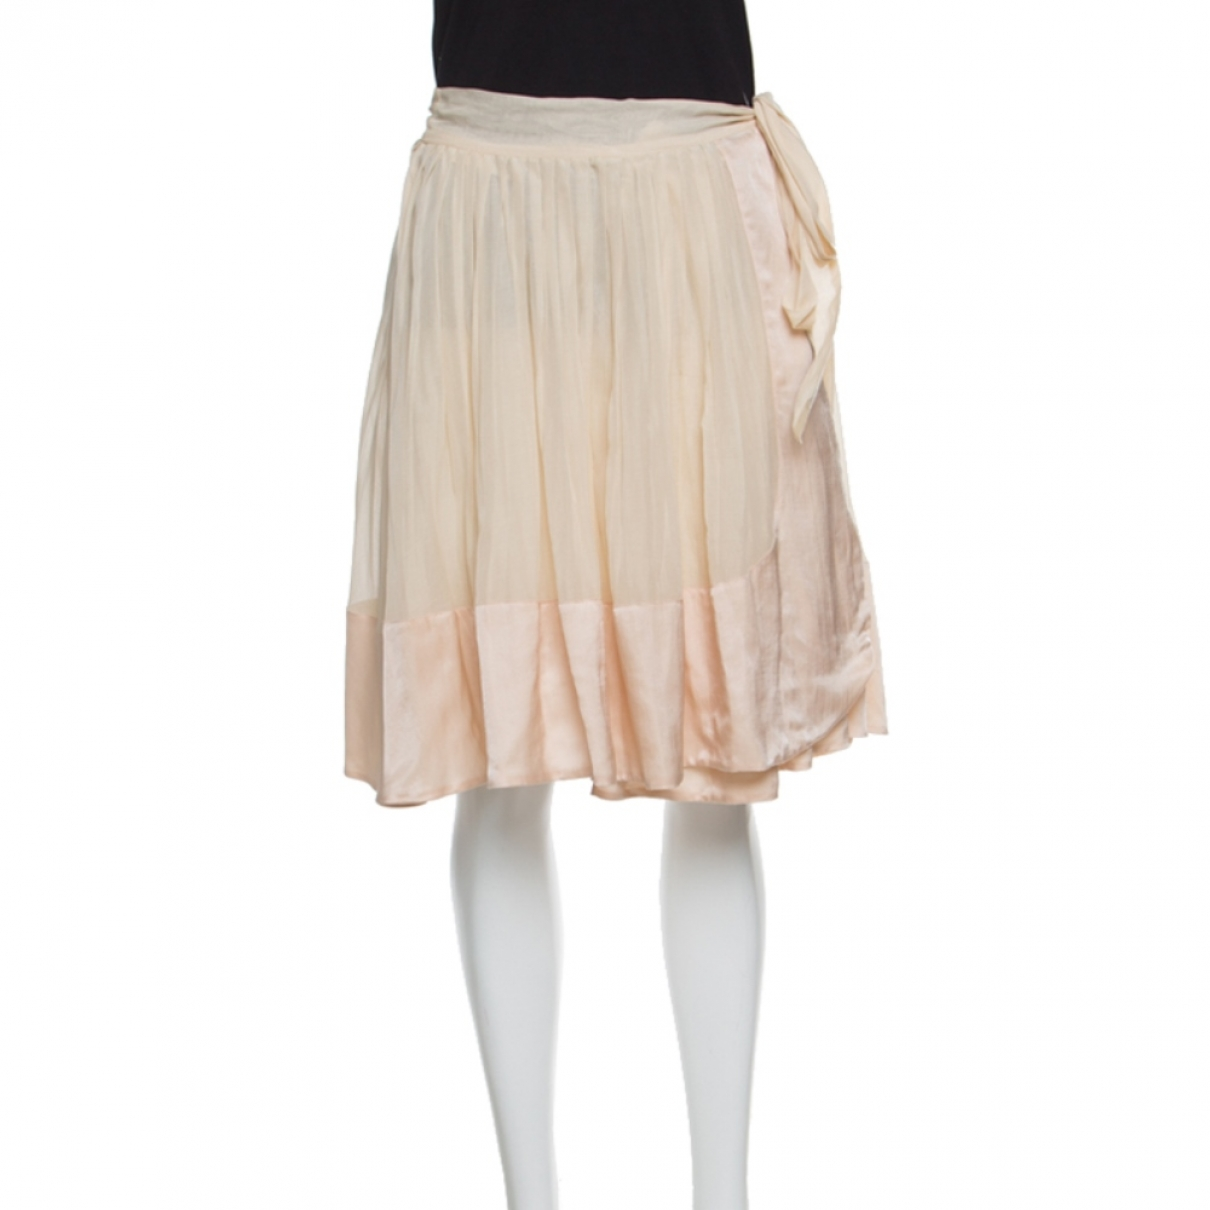 Chloé \N Beige Cotton skirt for Women 38 FR